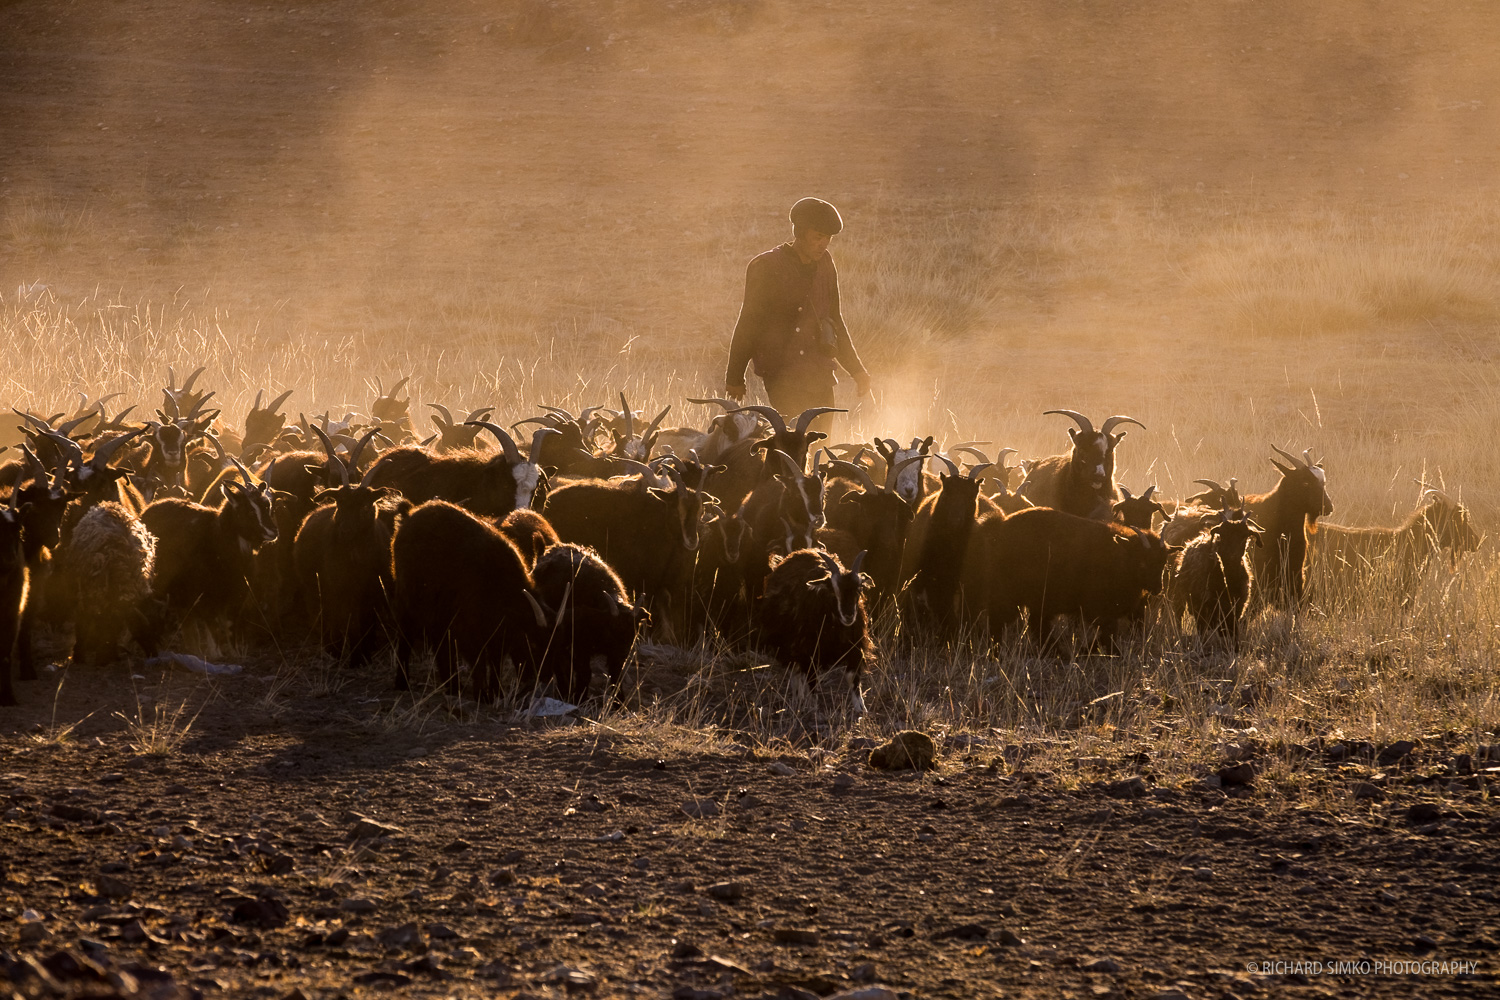 Goats in the golden dust,Fujifilm X-T1, XF 50-140mm f/2.8 LM OIS WR